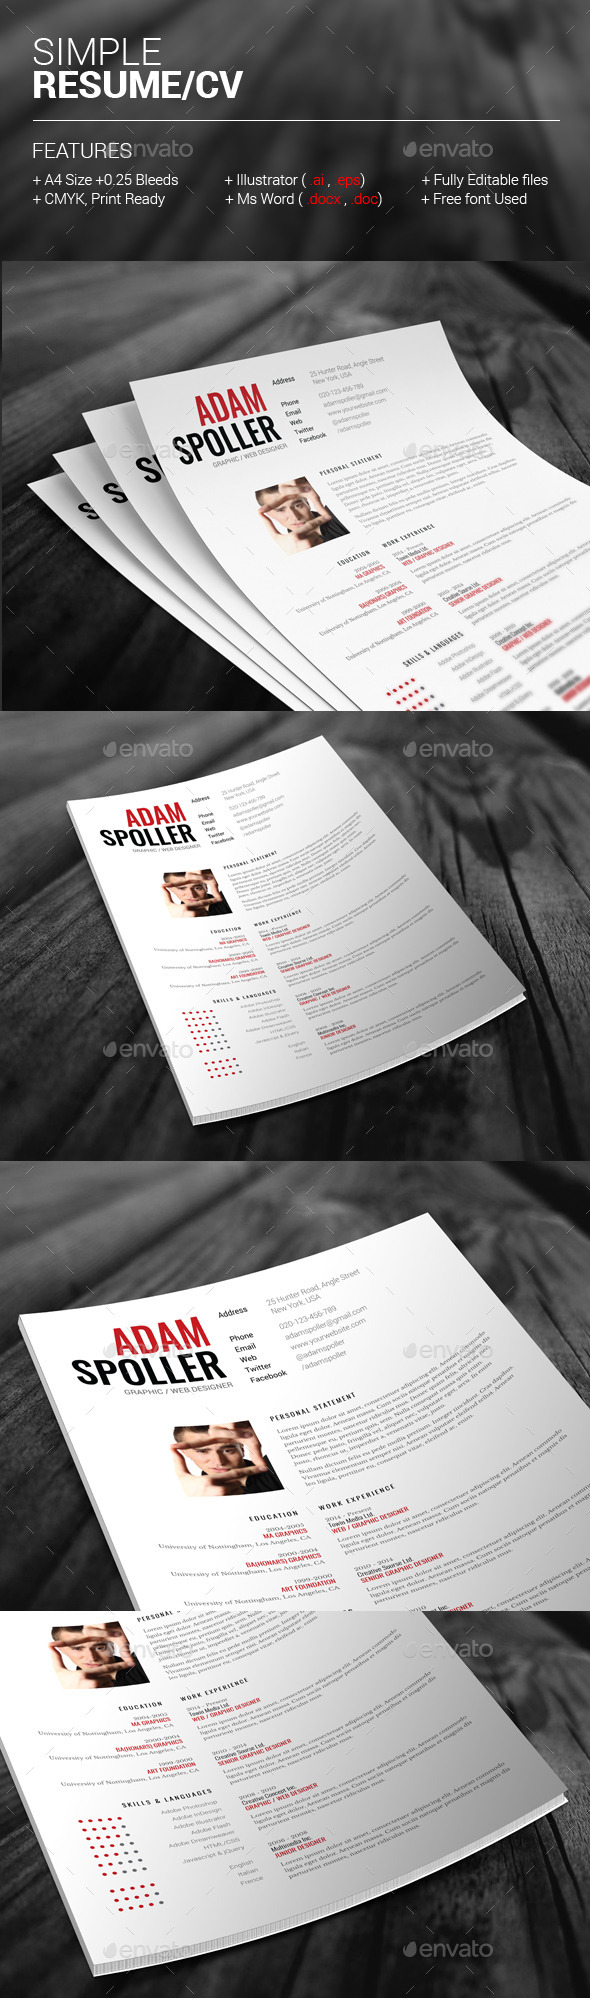 GraphicRiver Simple Resume CV 11209790